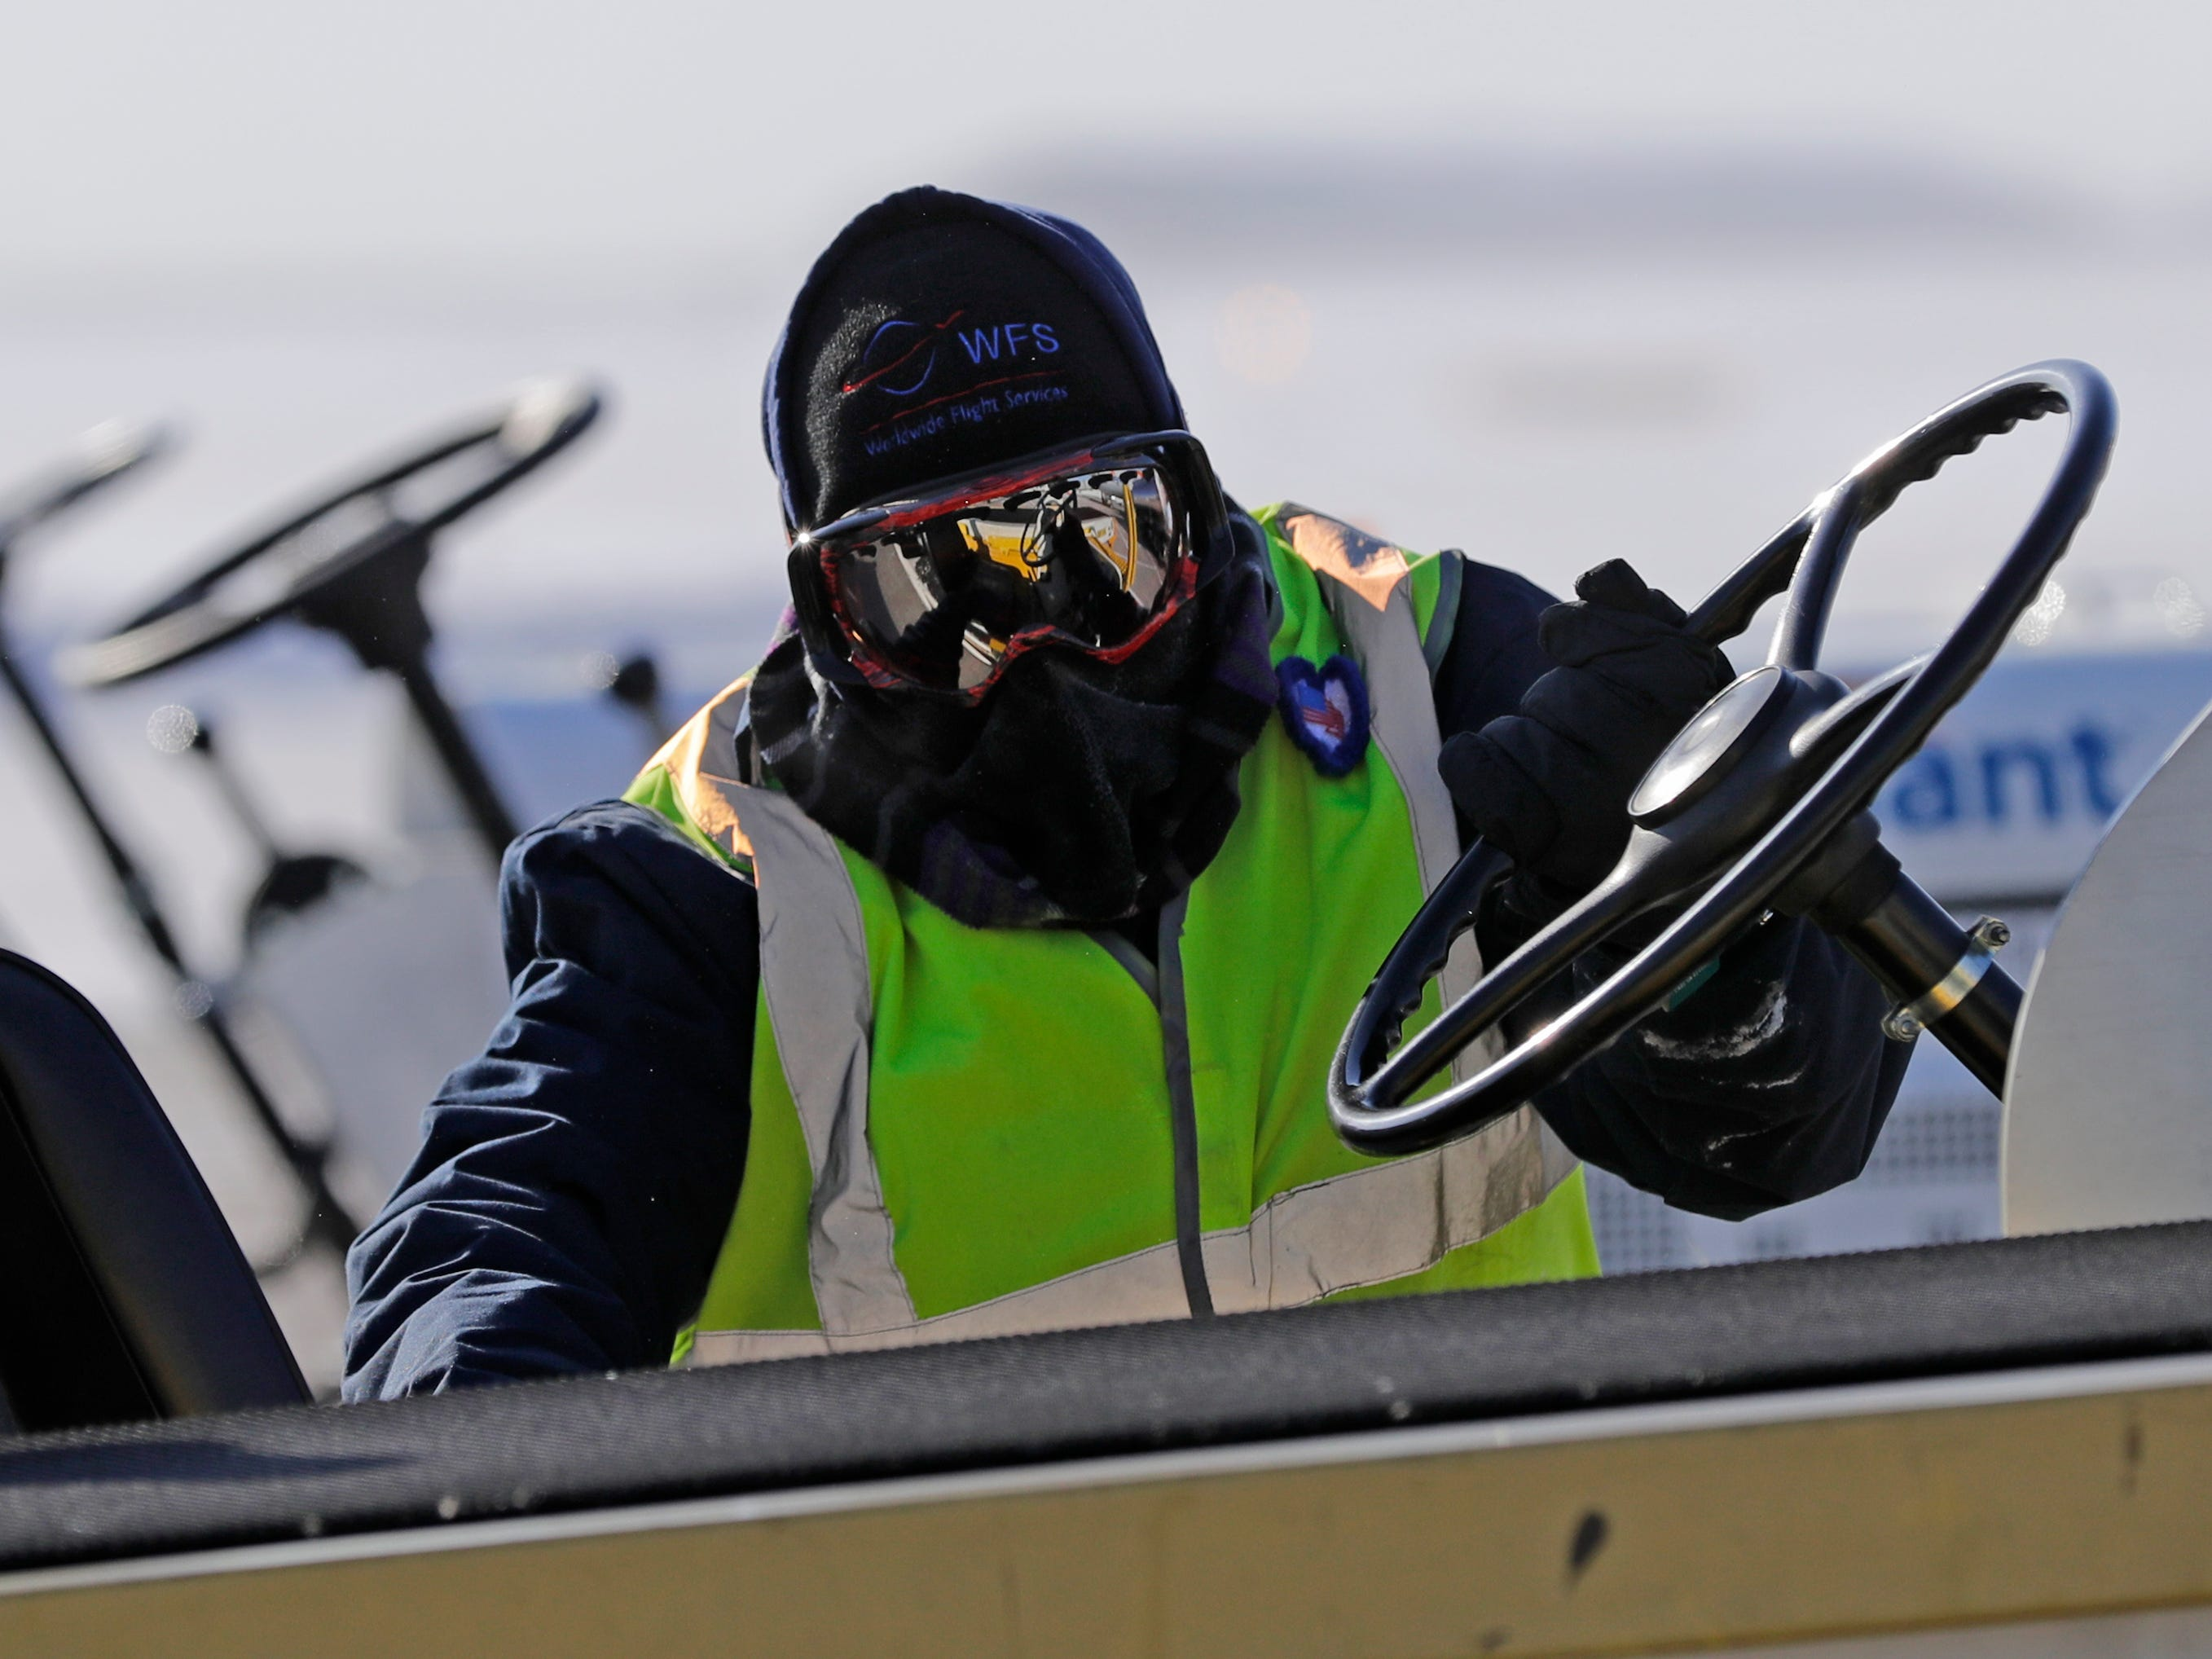 A Worldwide Flight Services employee braves frigid temperatures and high winds to remove luggage from an arriving Allegiant Airlines jet Jan. 30, 2019, at the Appleton International Airport in Greenville, Wis.